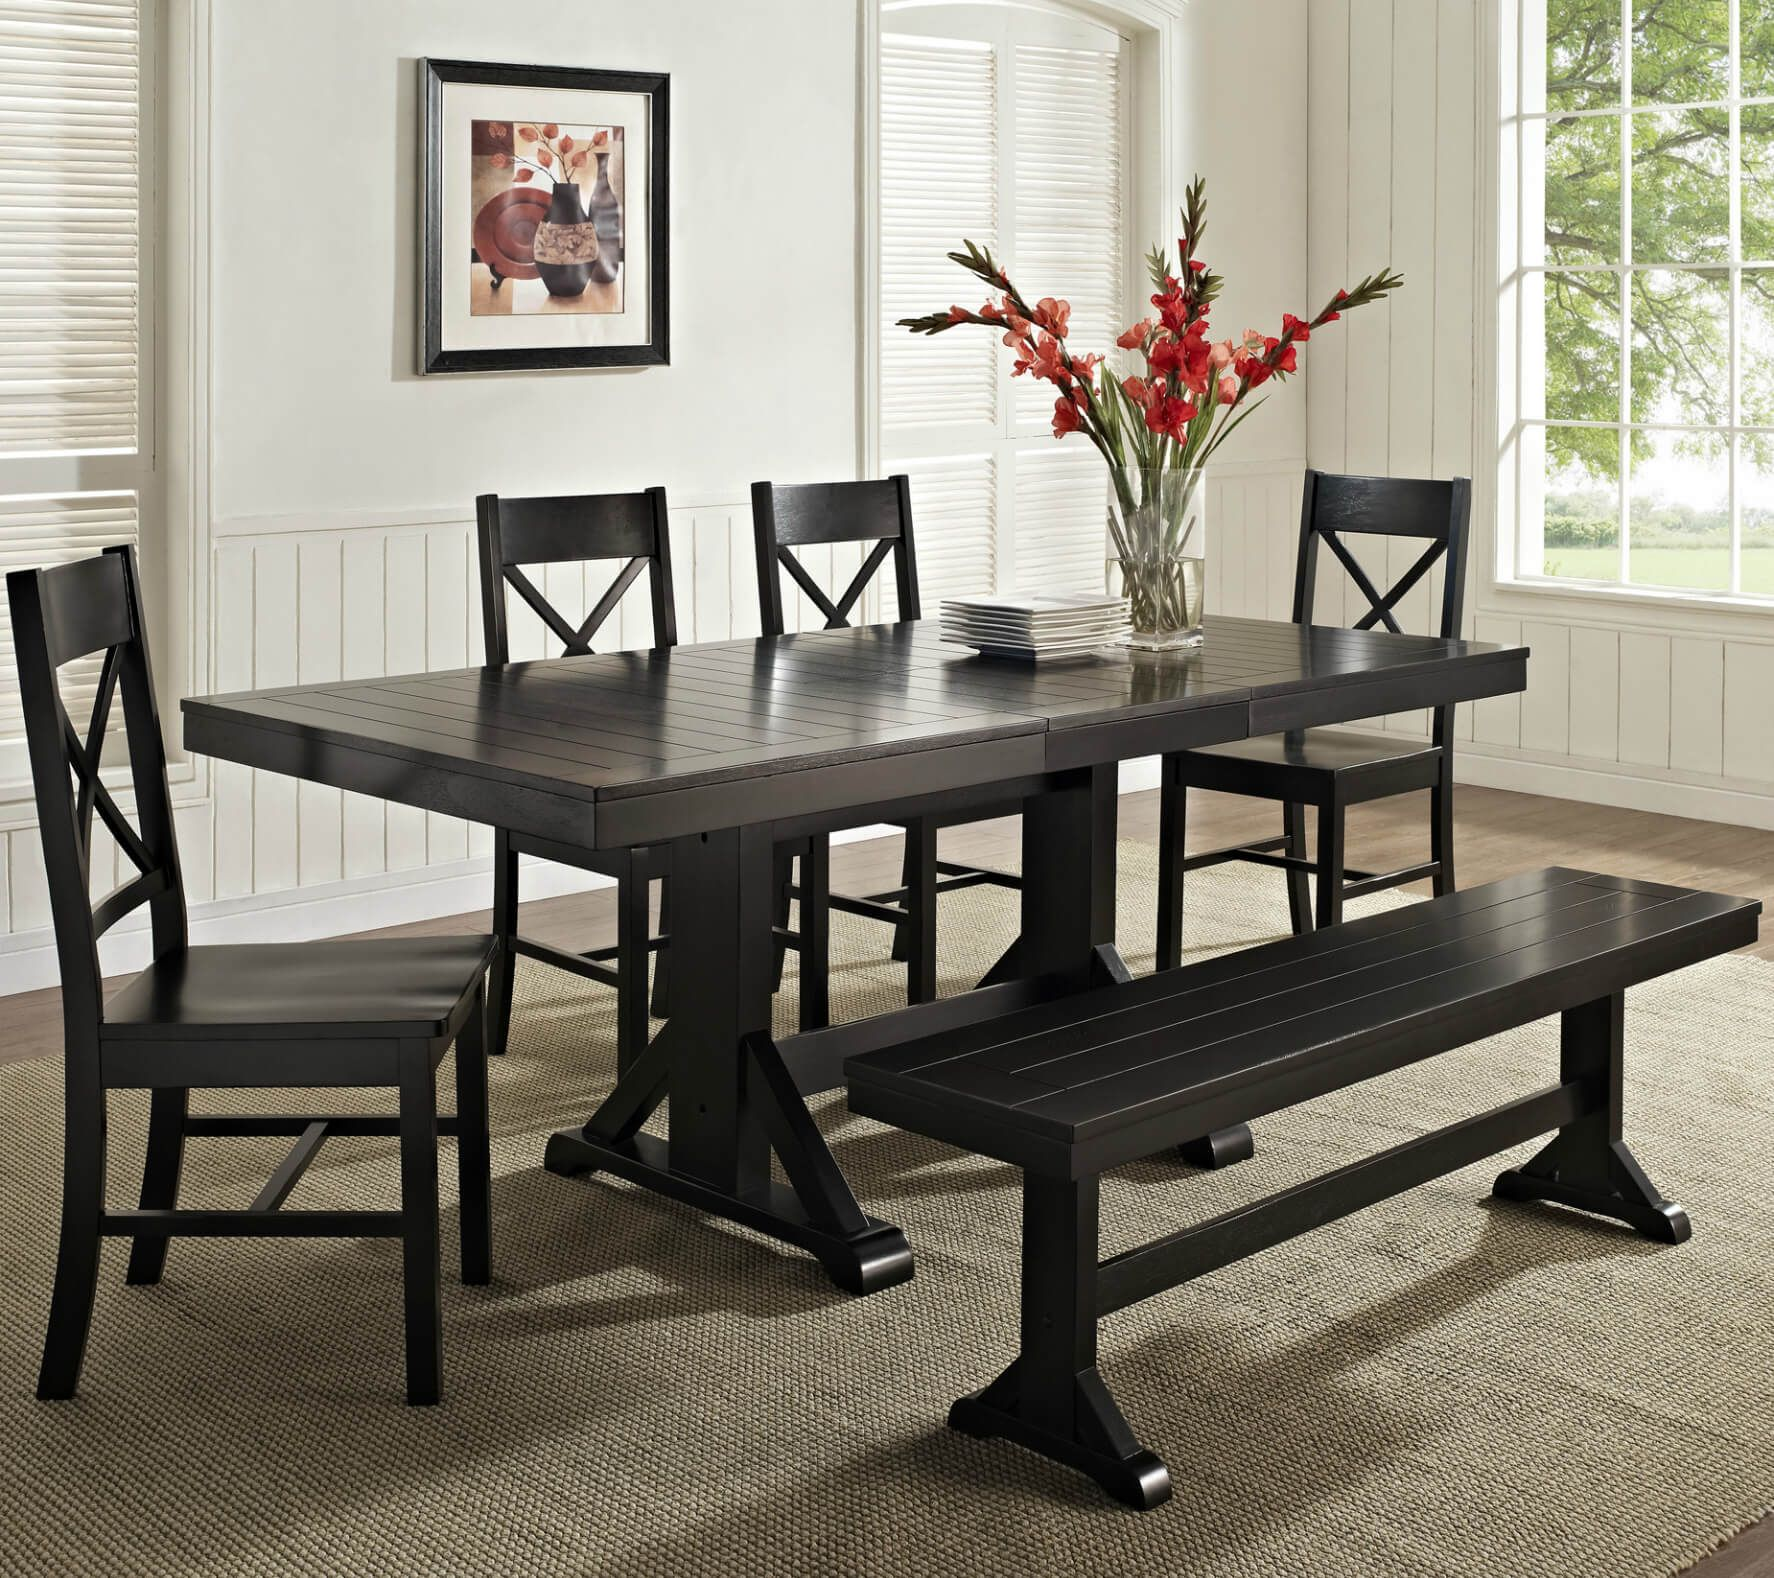 picnic table style dining acehighwine best decor idea stunning